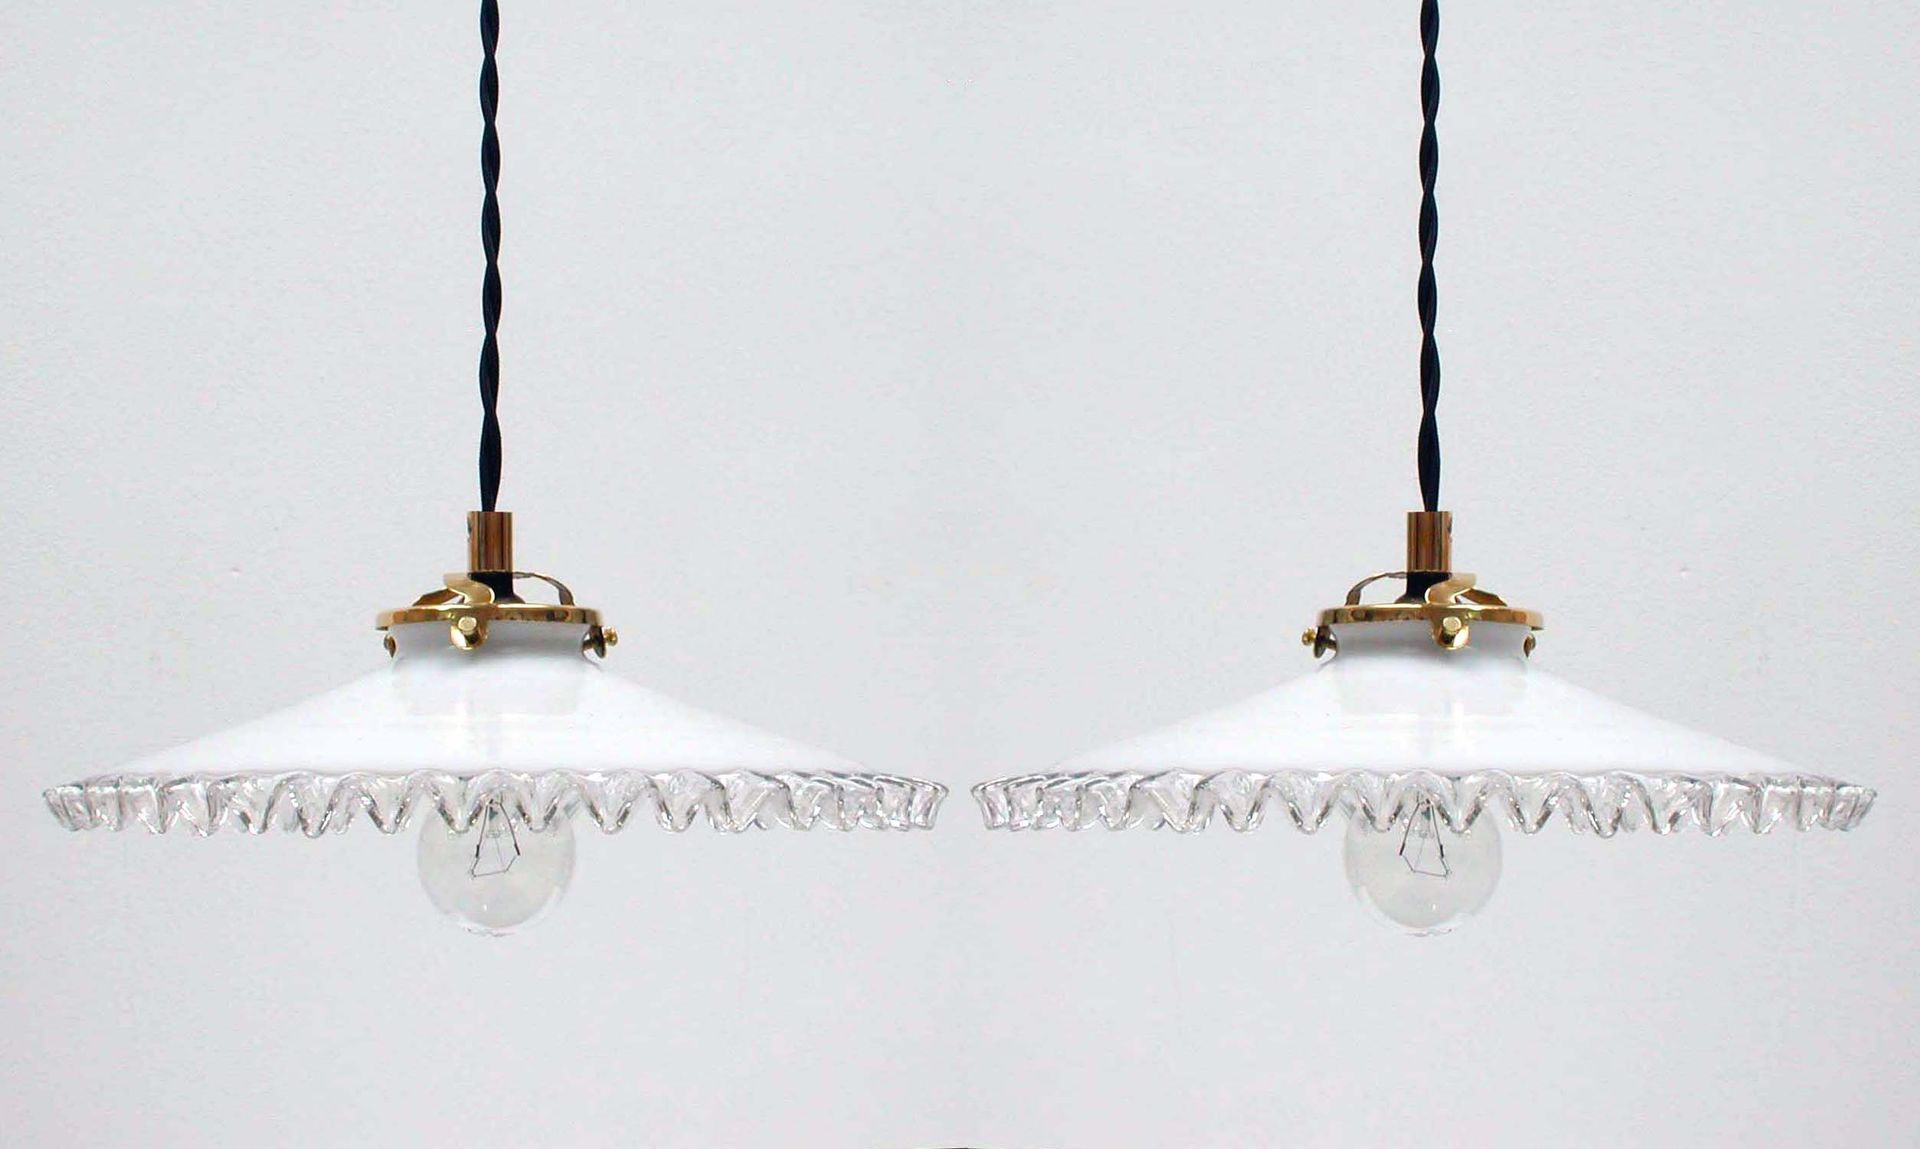 Vintage french opaline glass pendant lamps 1950s set of 2 for sale vintage french opaline glass pendant lamps 1950s set of 2 aloadofball Gallery